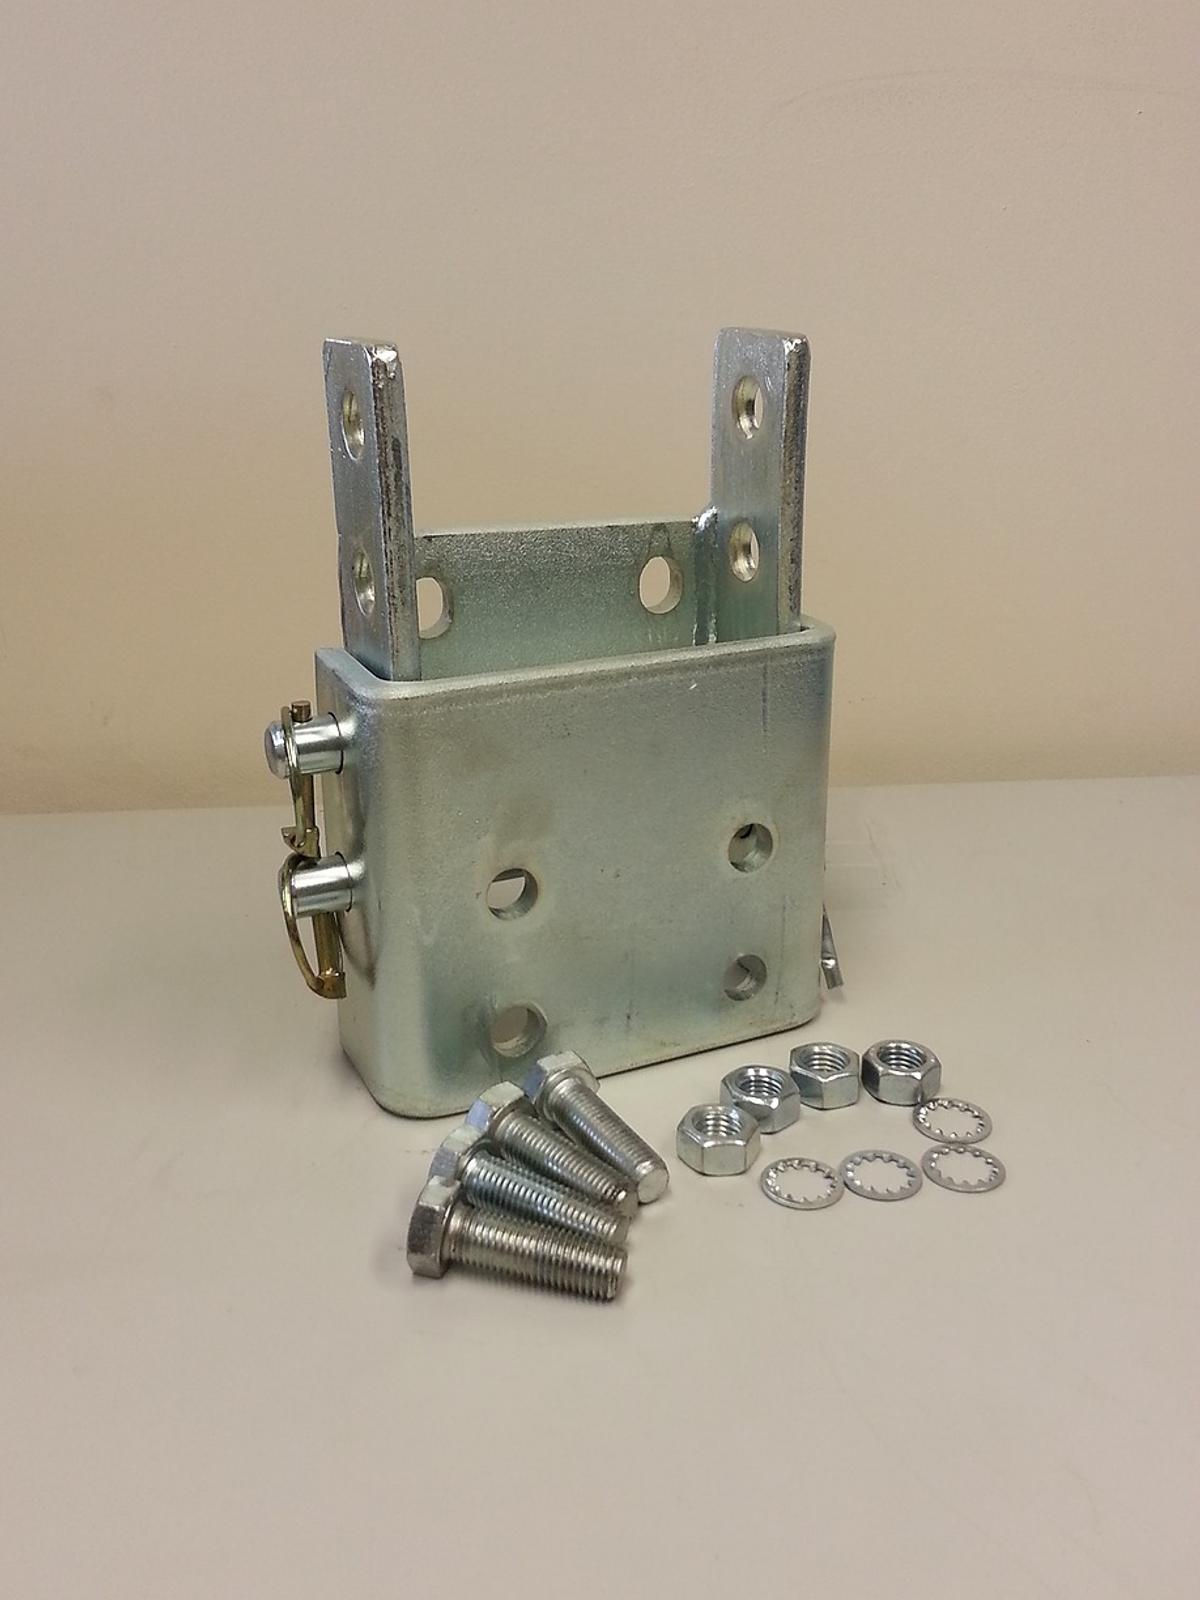 TOWBAR ADJUSTABLE HEIGHT COUPLING WITH BOLTS